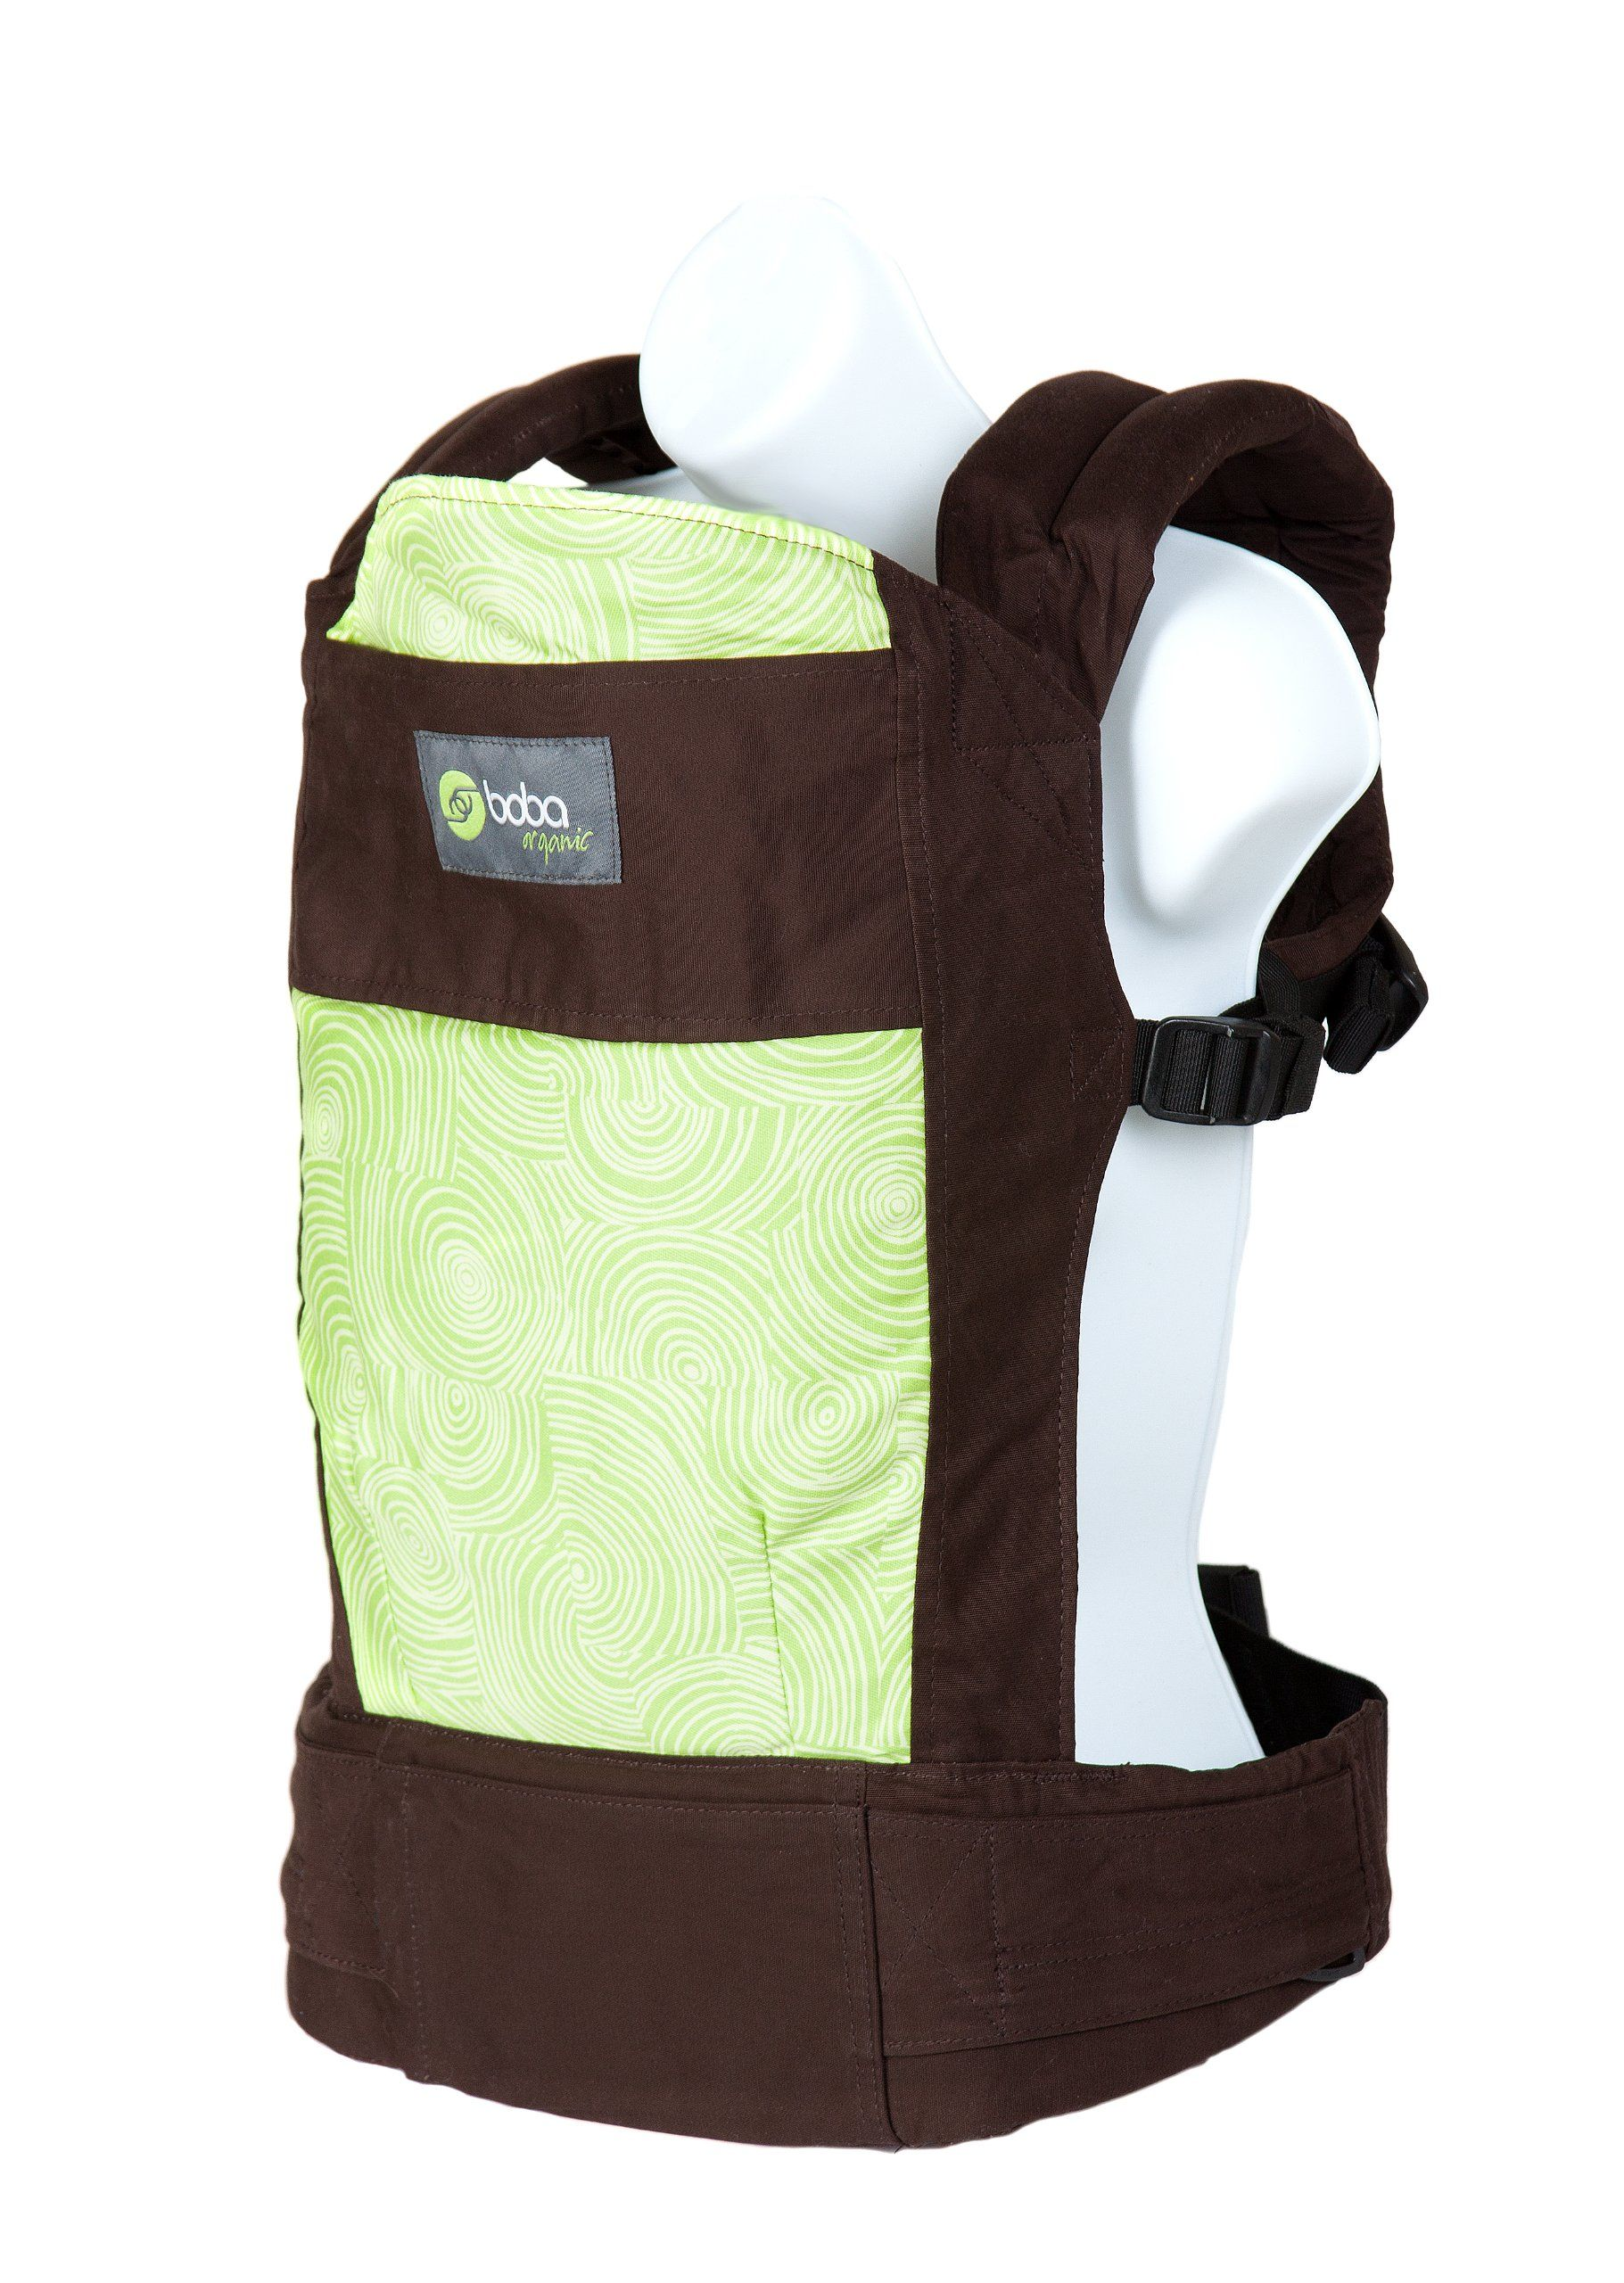 784a4f8c25a6 Chicco UltraSoft Infant Carrier - Champagne (Beige)